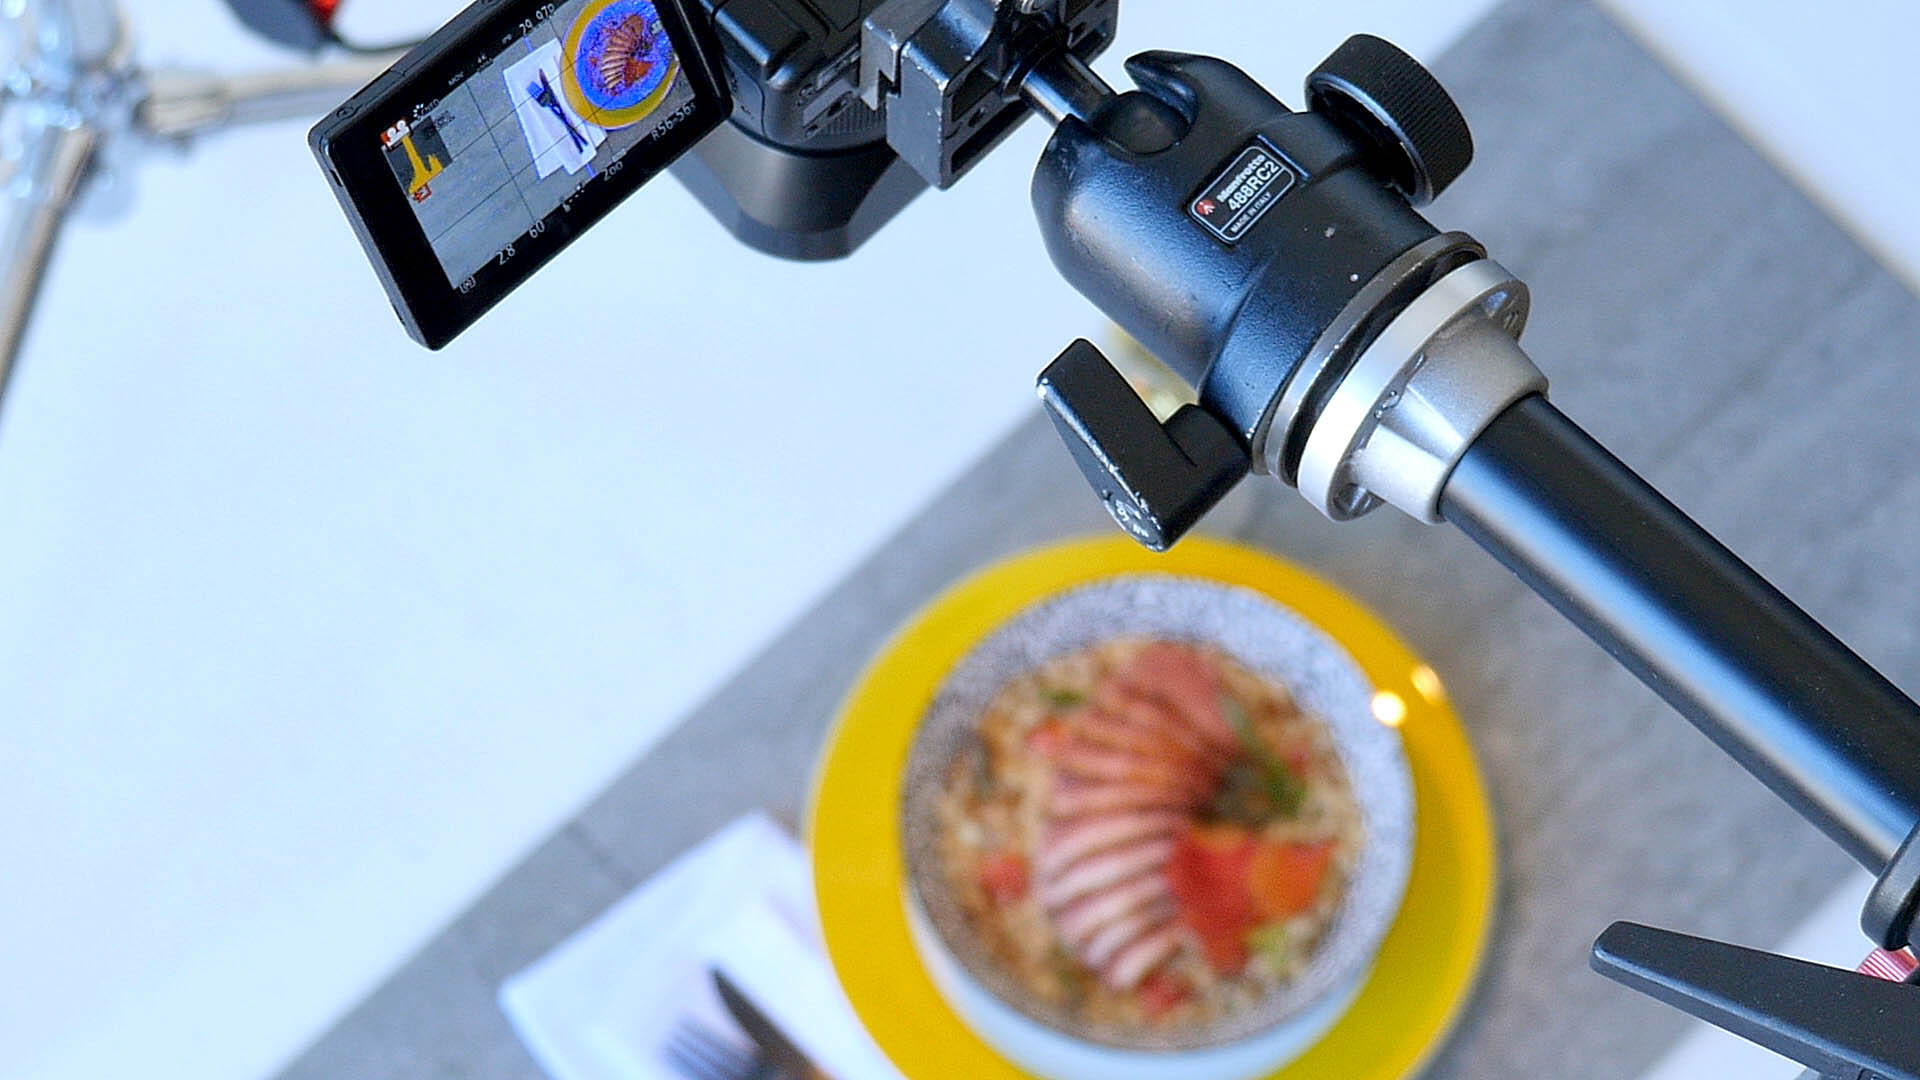 A frame grab photograph from the video Food & Camera Gear Behind the Scenes at a Food Photo Video Shoot at a Montreal Studio. The photograph shows a camera pointed down over a beautifully styled bowl of food. The bowl of food is visible in the LCD display on the camera. The camera is a Panasonic GH4 with a Panasonic 25mm f 1.4 lens. Original Food & Camera Gear Behind the Scenes at a Food Photo Video Shoot at a Montreal Studio video posted here https://www.youtube.com/watch?v=Fz8r8y5M-uc